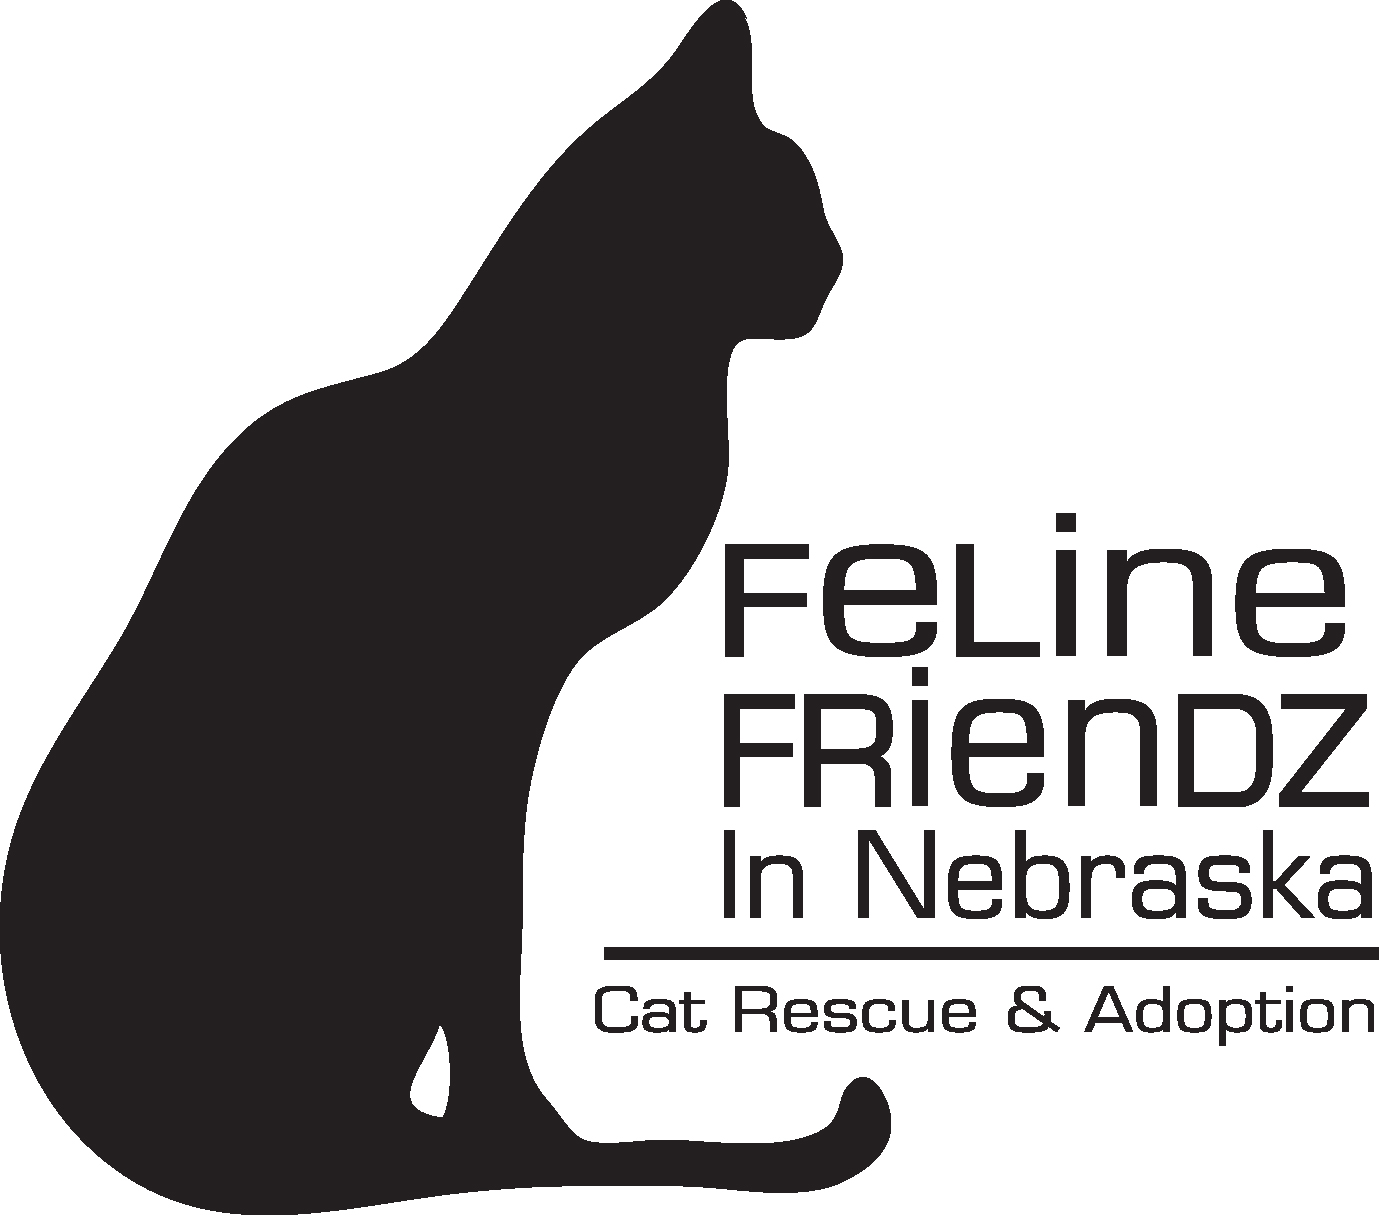 Feline Friendz in Nebraska